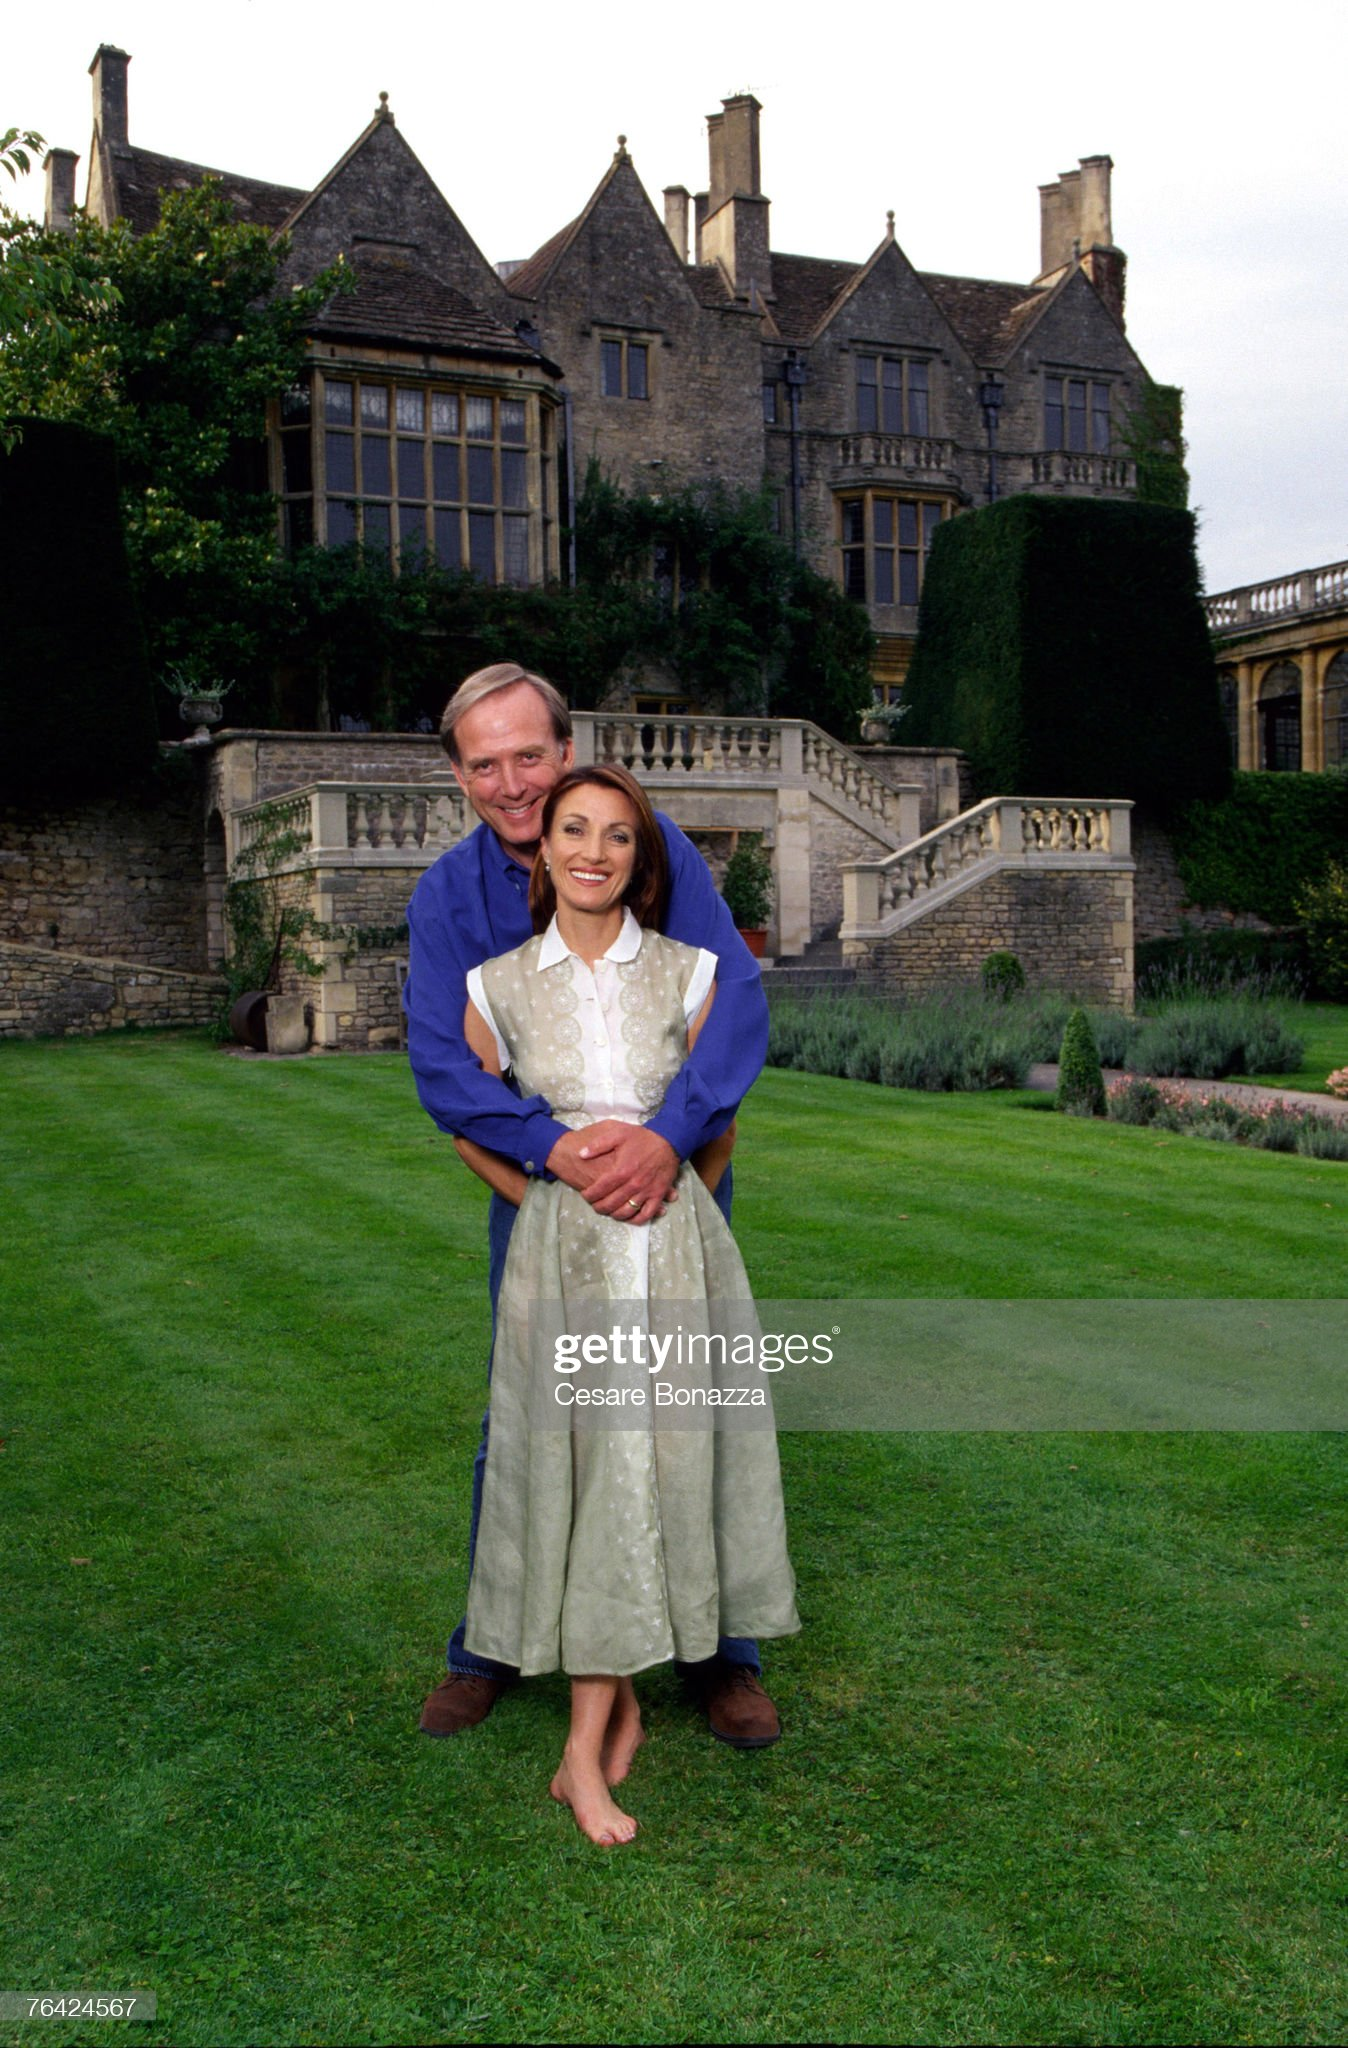 https://media.gettyimages.com/photos/james-keach-and-jane-seymour-jane-seymour-photo-shoot-in-bath-england-picture-id76424567?s=2048x2048